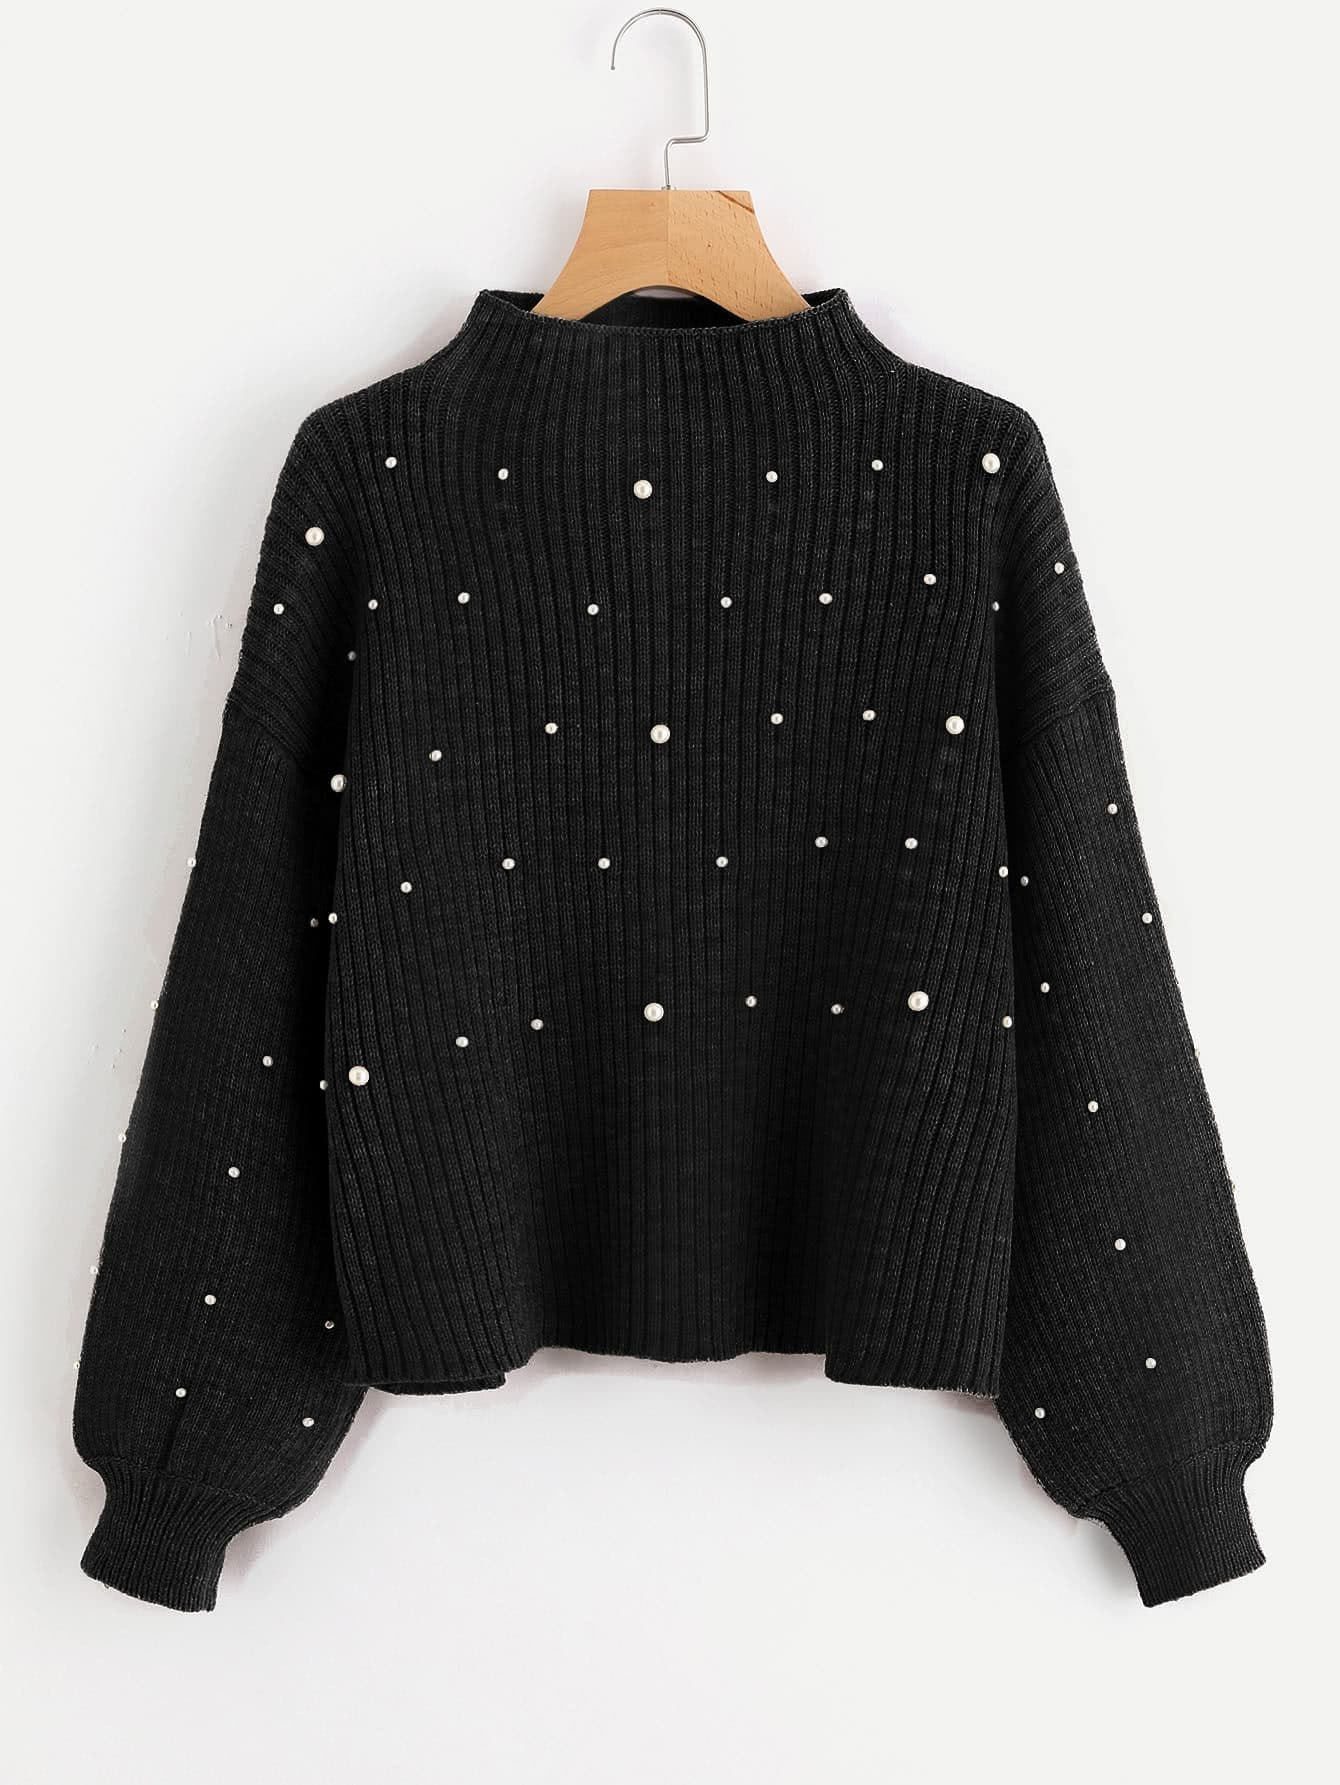 Pearl Embellished Exaggerated Bishop Sleeve Ribbed Sweater exaggerated mask brooch